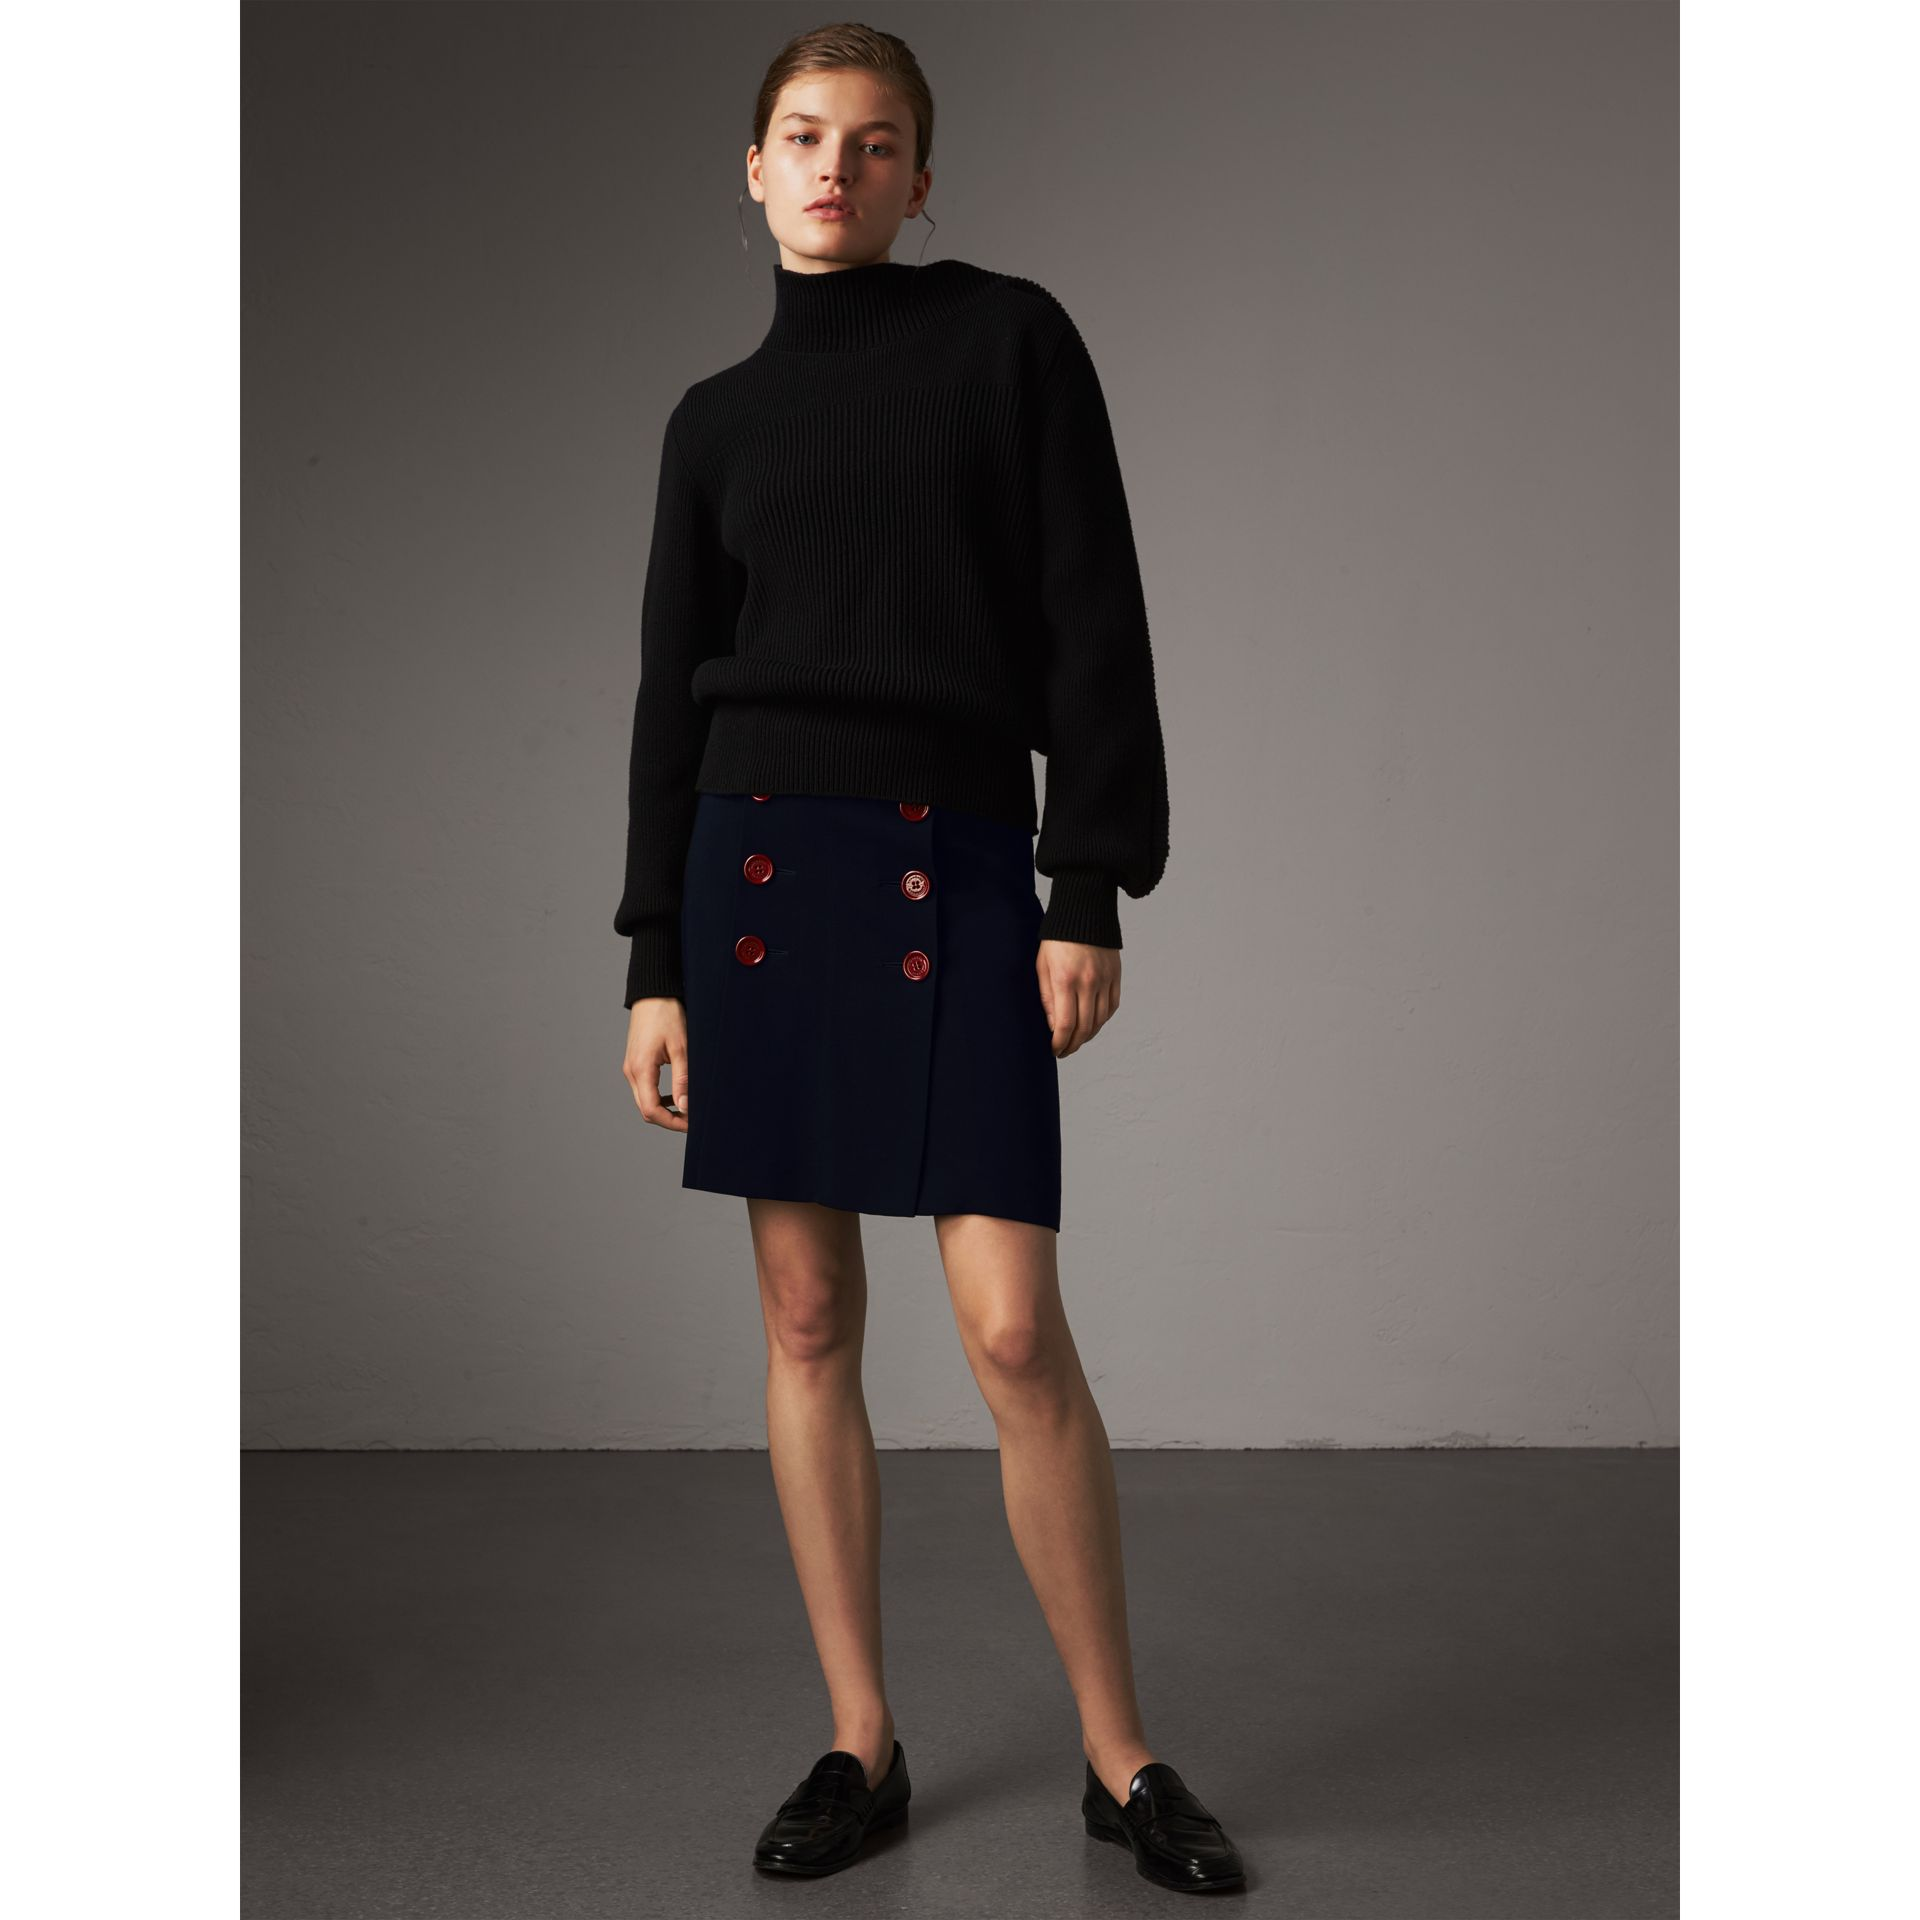 Resin Button Double-breasted Tailored Skirt in Navy - Women | Burberry Singapore - gallery image 5